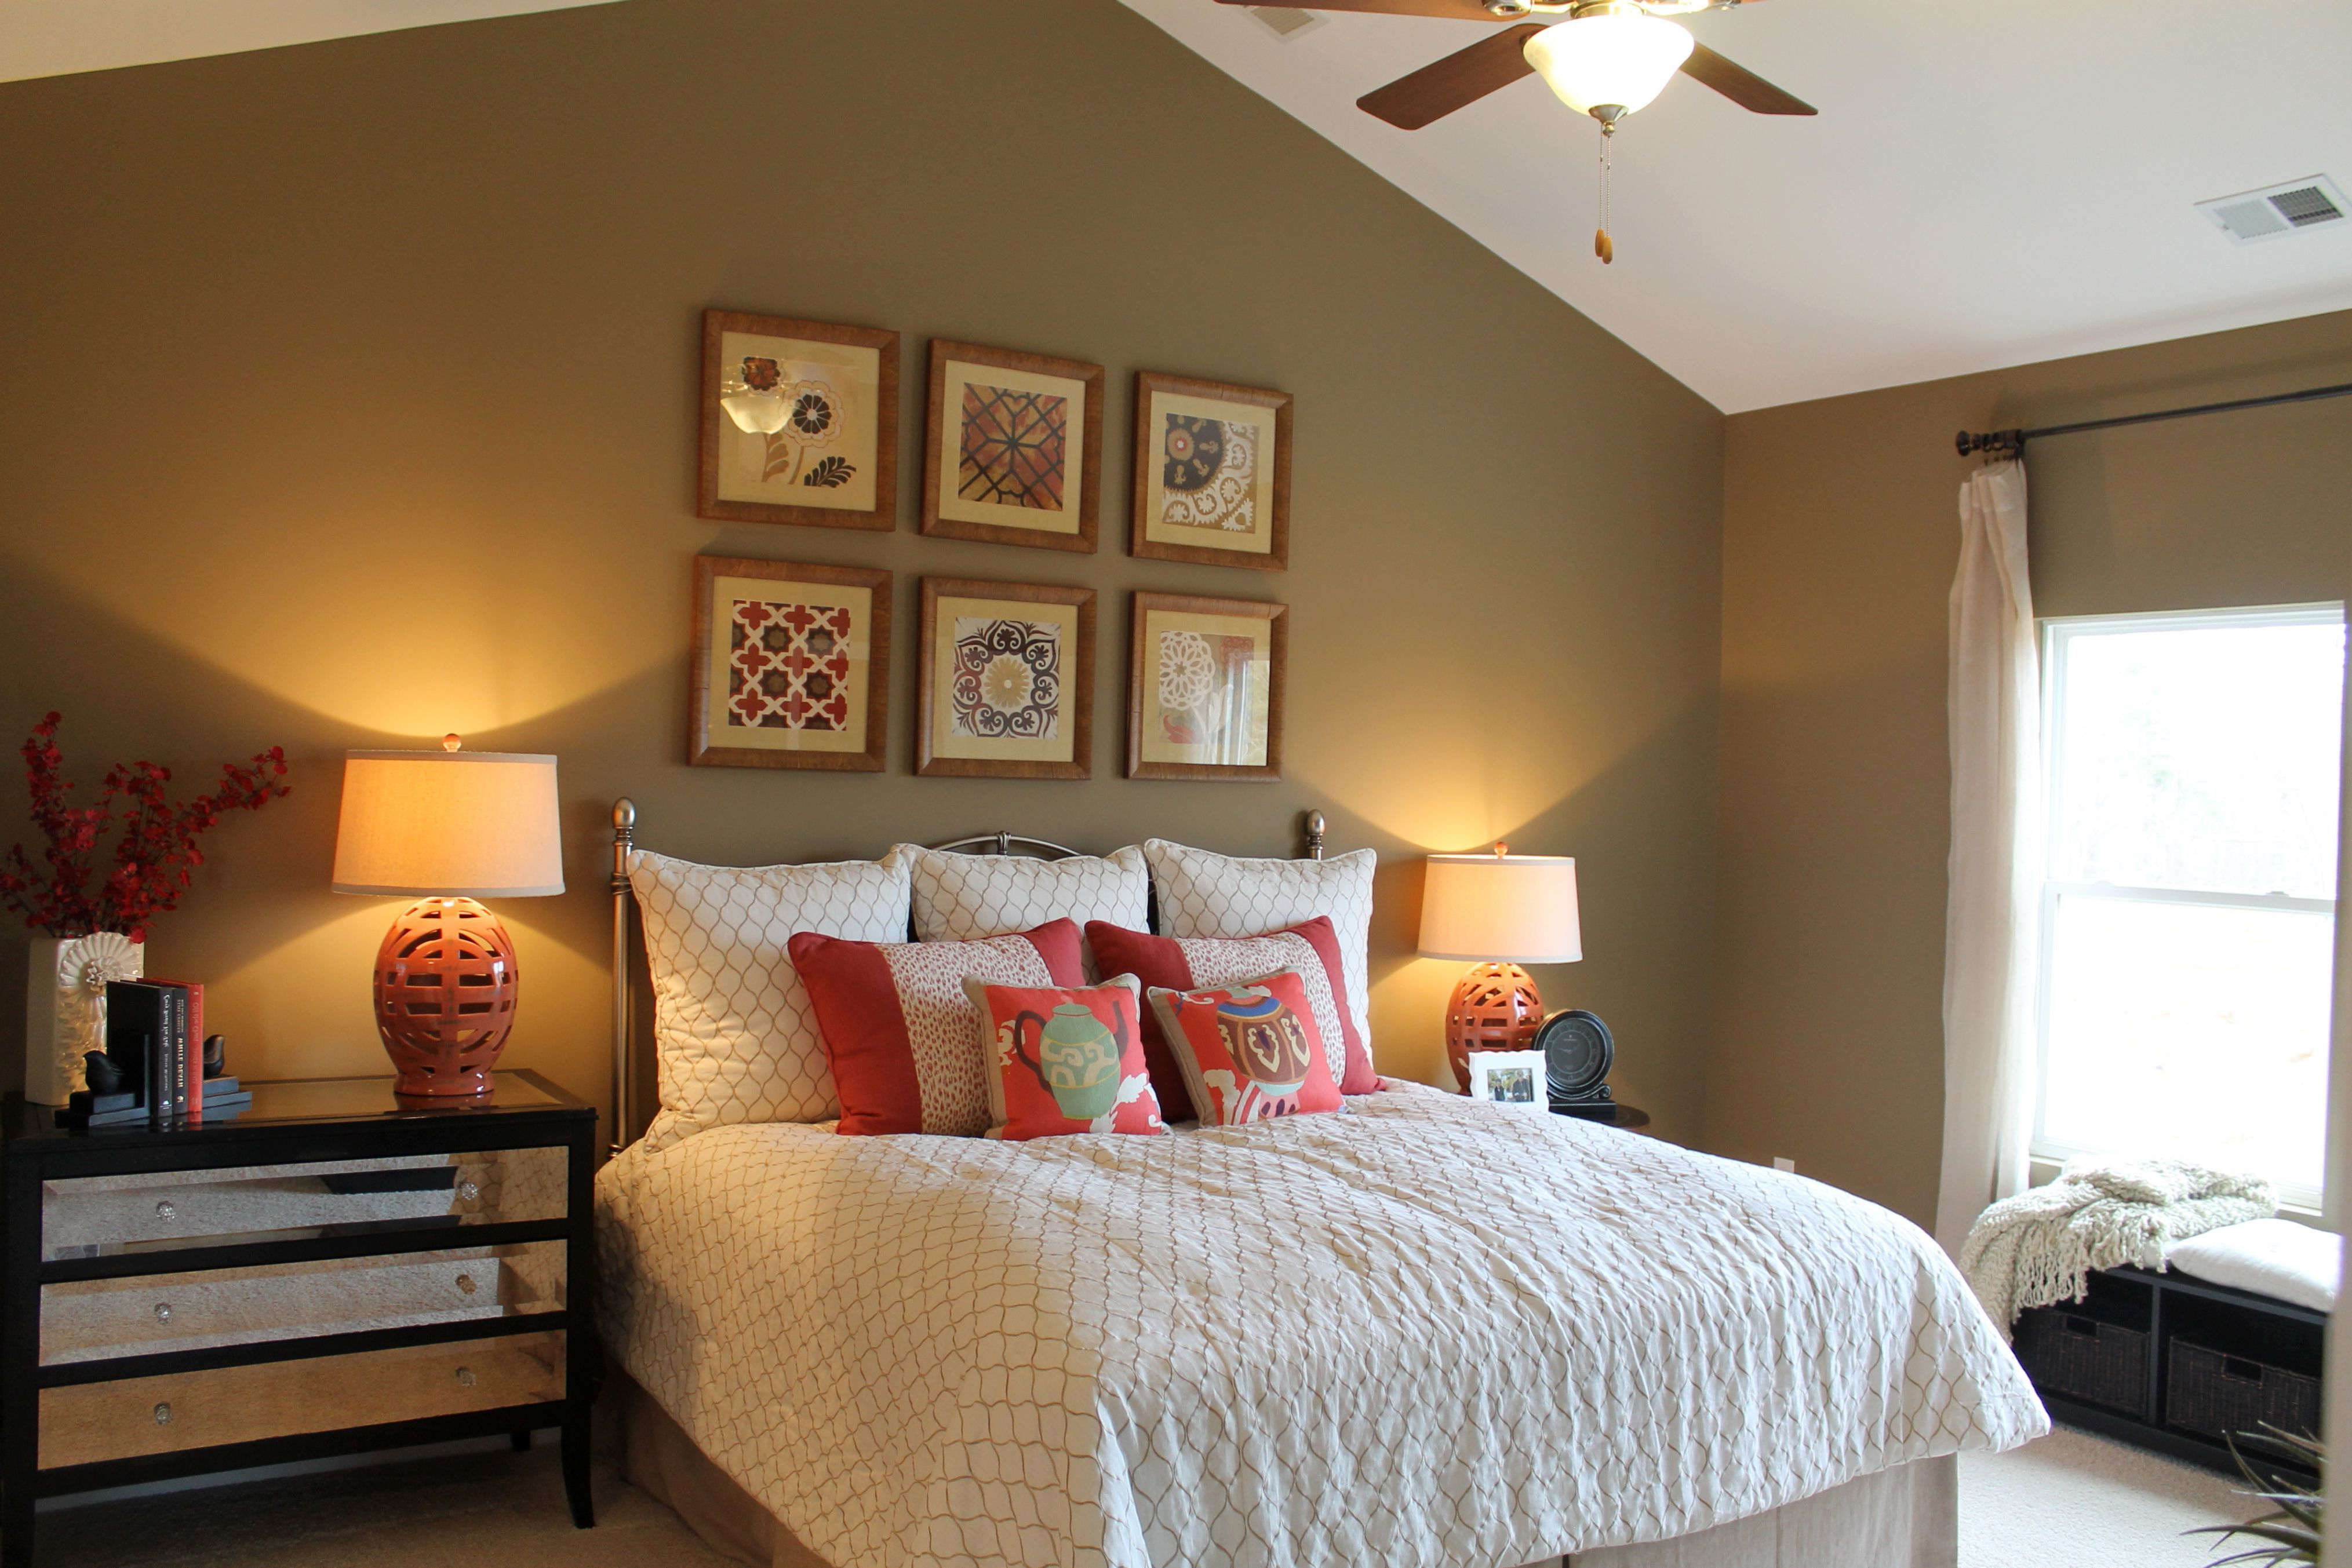 Minimalist Vaulted Ceiling Bedroom Paint Ideas For Contemporary Bedroom Decoration Master Bedrooms Decor Simple Bedroom Design Vaulted Ceiling Bedroom